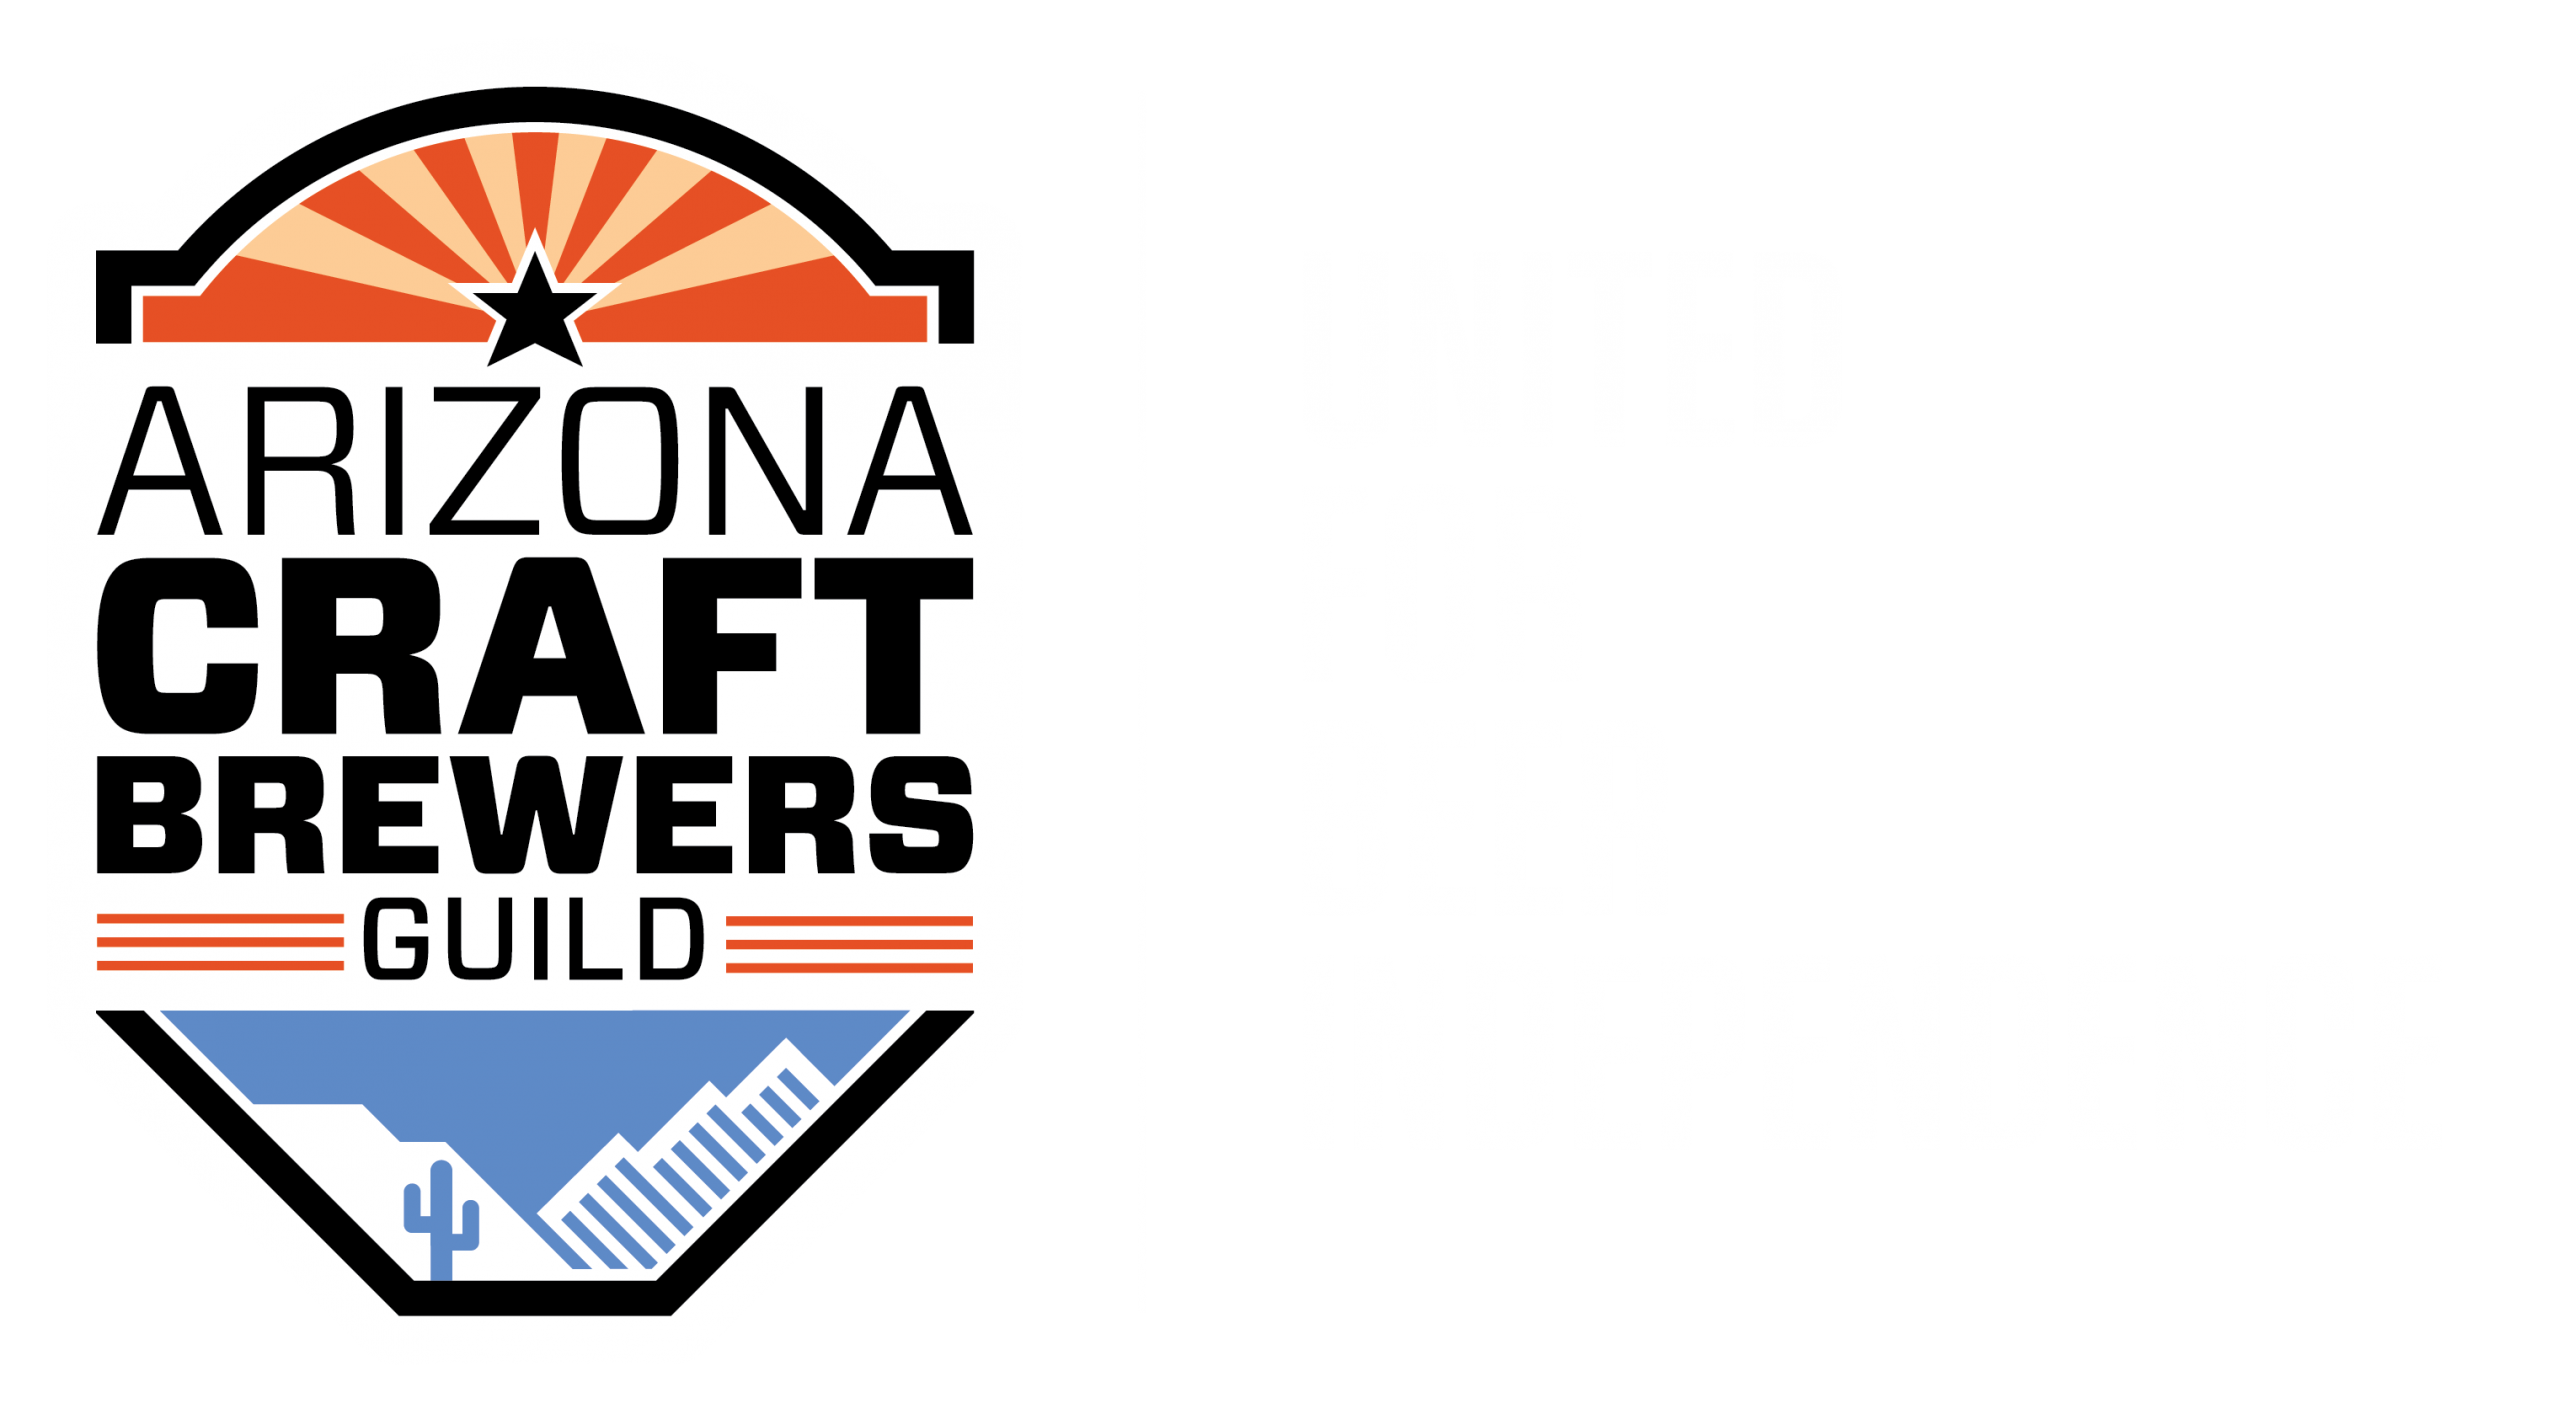 THAT Brewery | Arizona Craft Brewers Guild